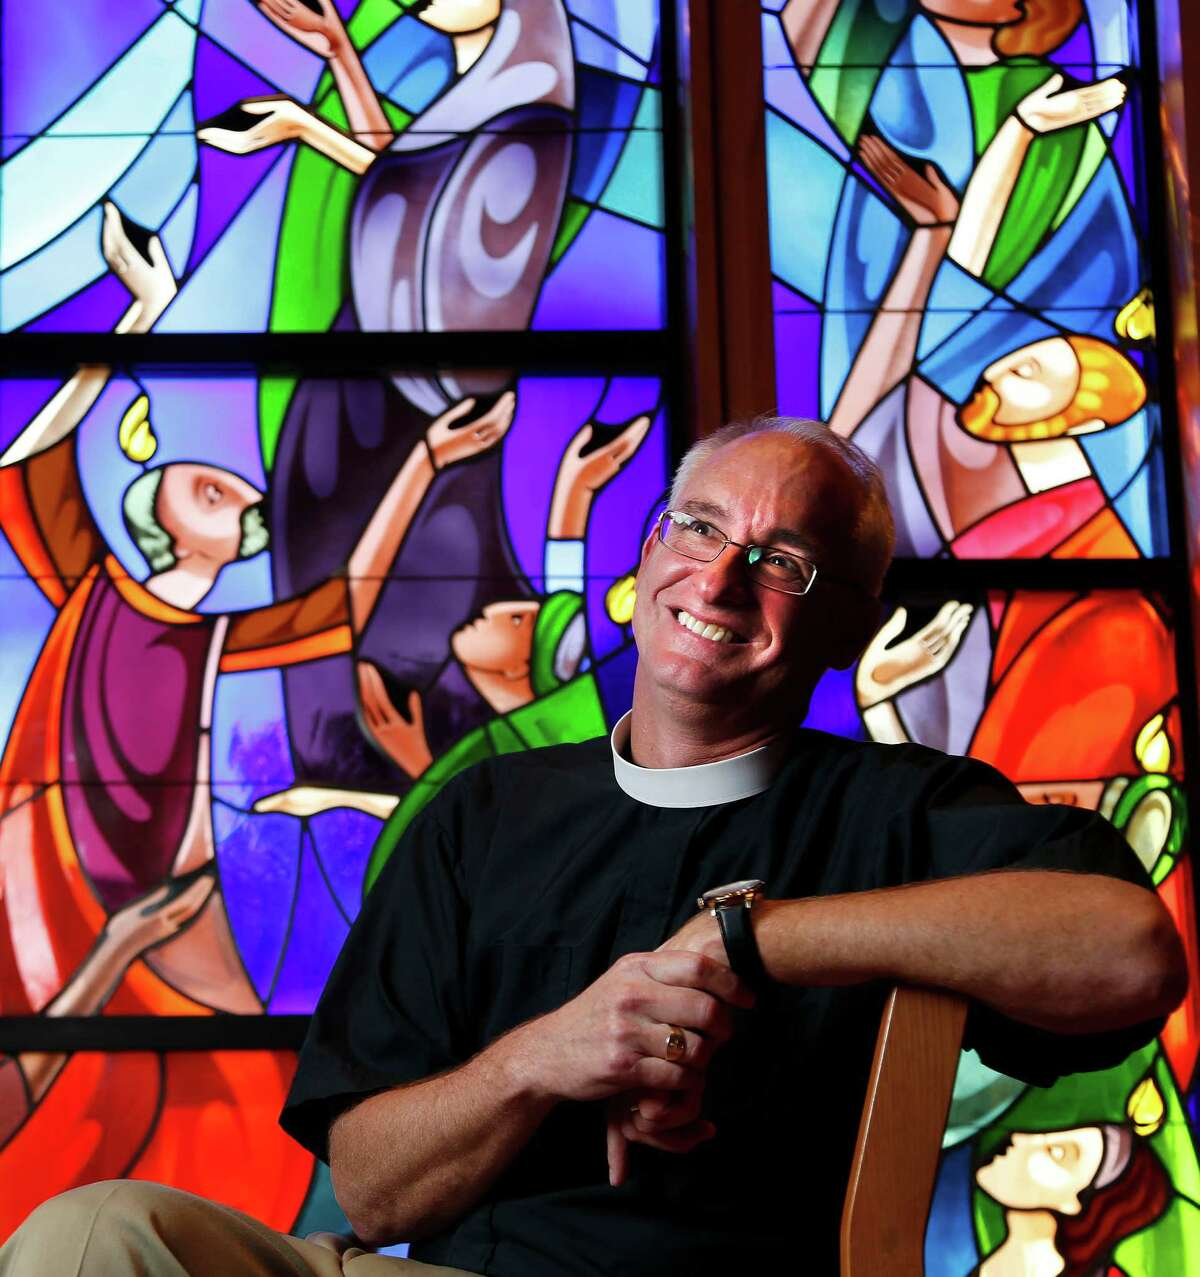 The Reverend Clay Lein, the new rector at St. John's Episcopal Church, Thursday, Oct. 30, 2014, in Houston.